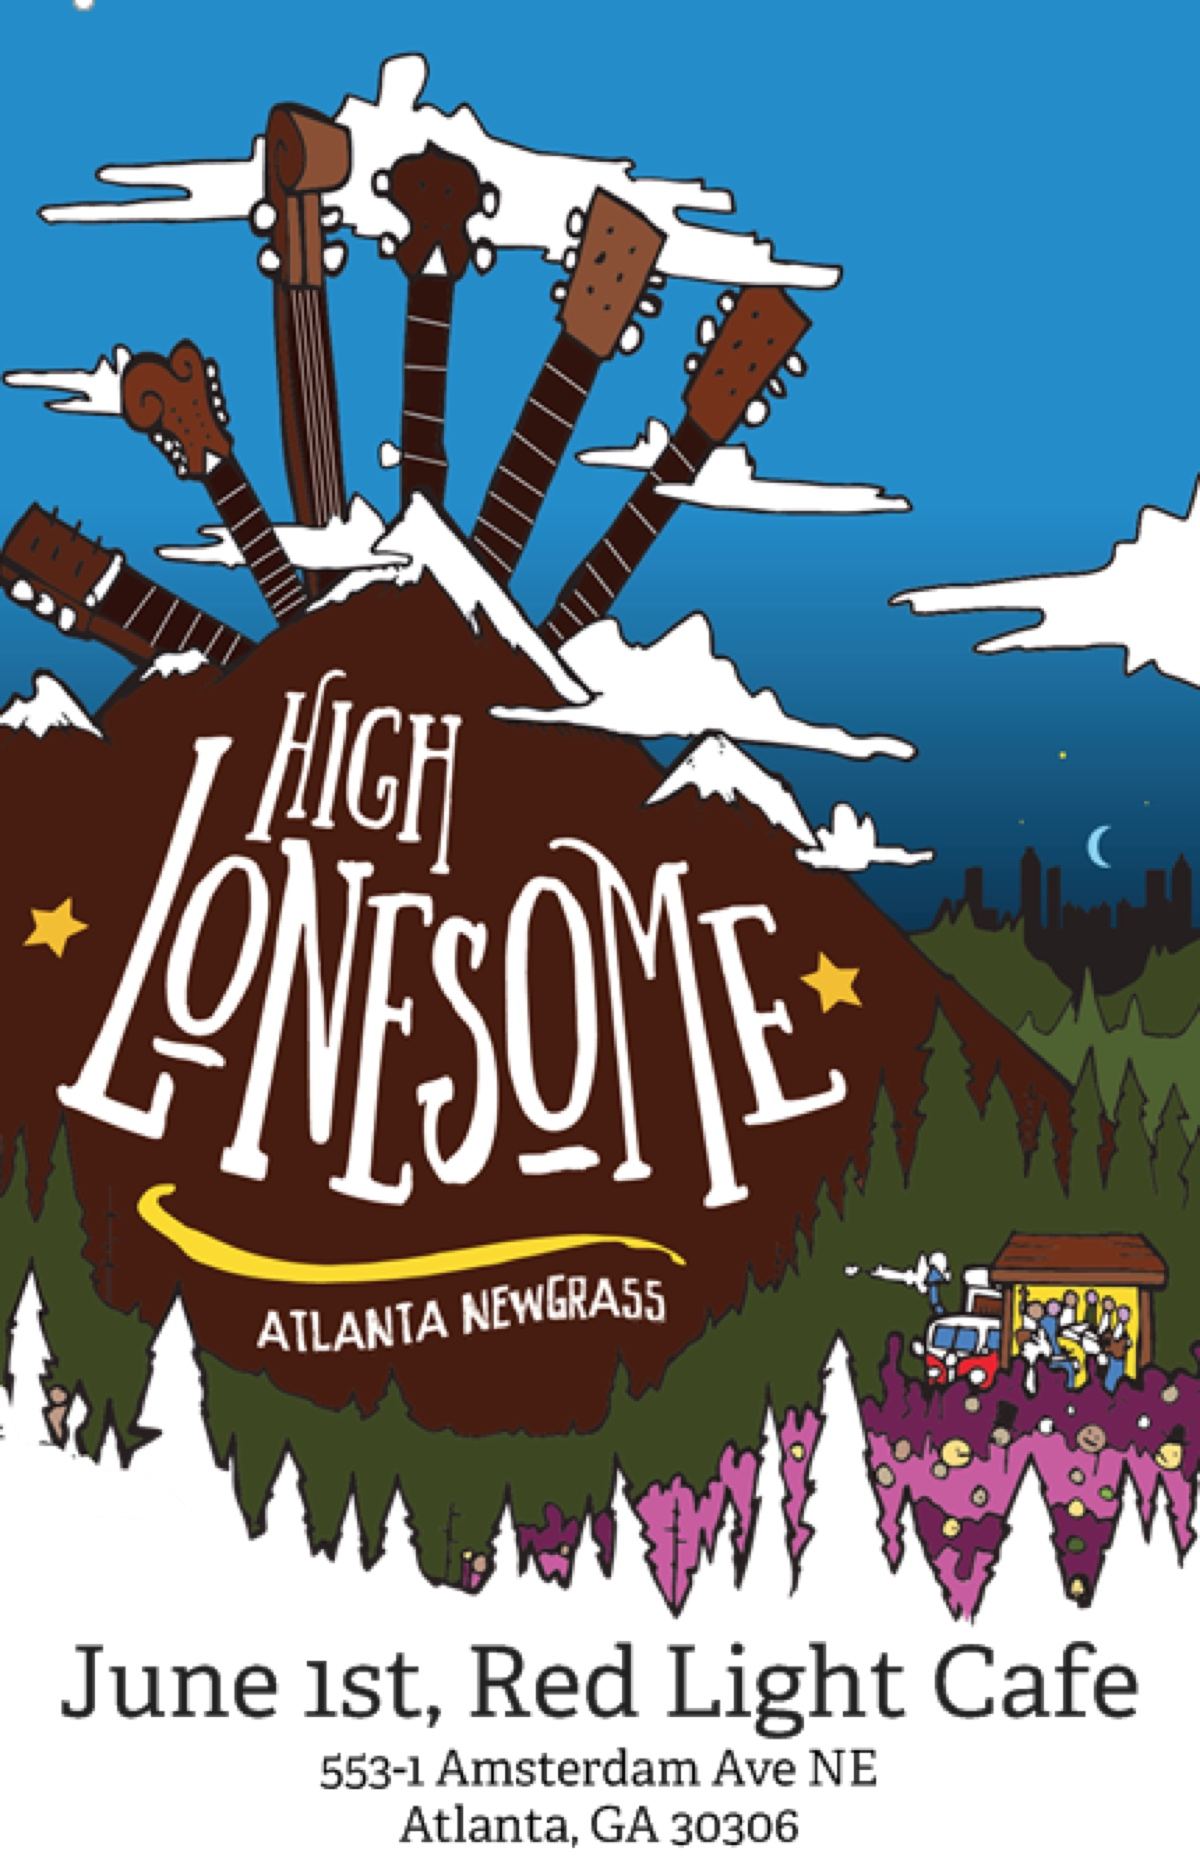 High Lonesome (Bluegrass / Newgrass / Nastygrass) — June 1, 2019 — Red Light Café, Atlanta, GA